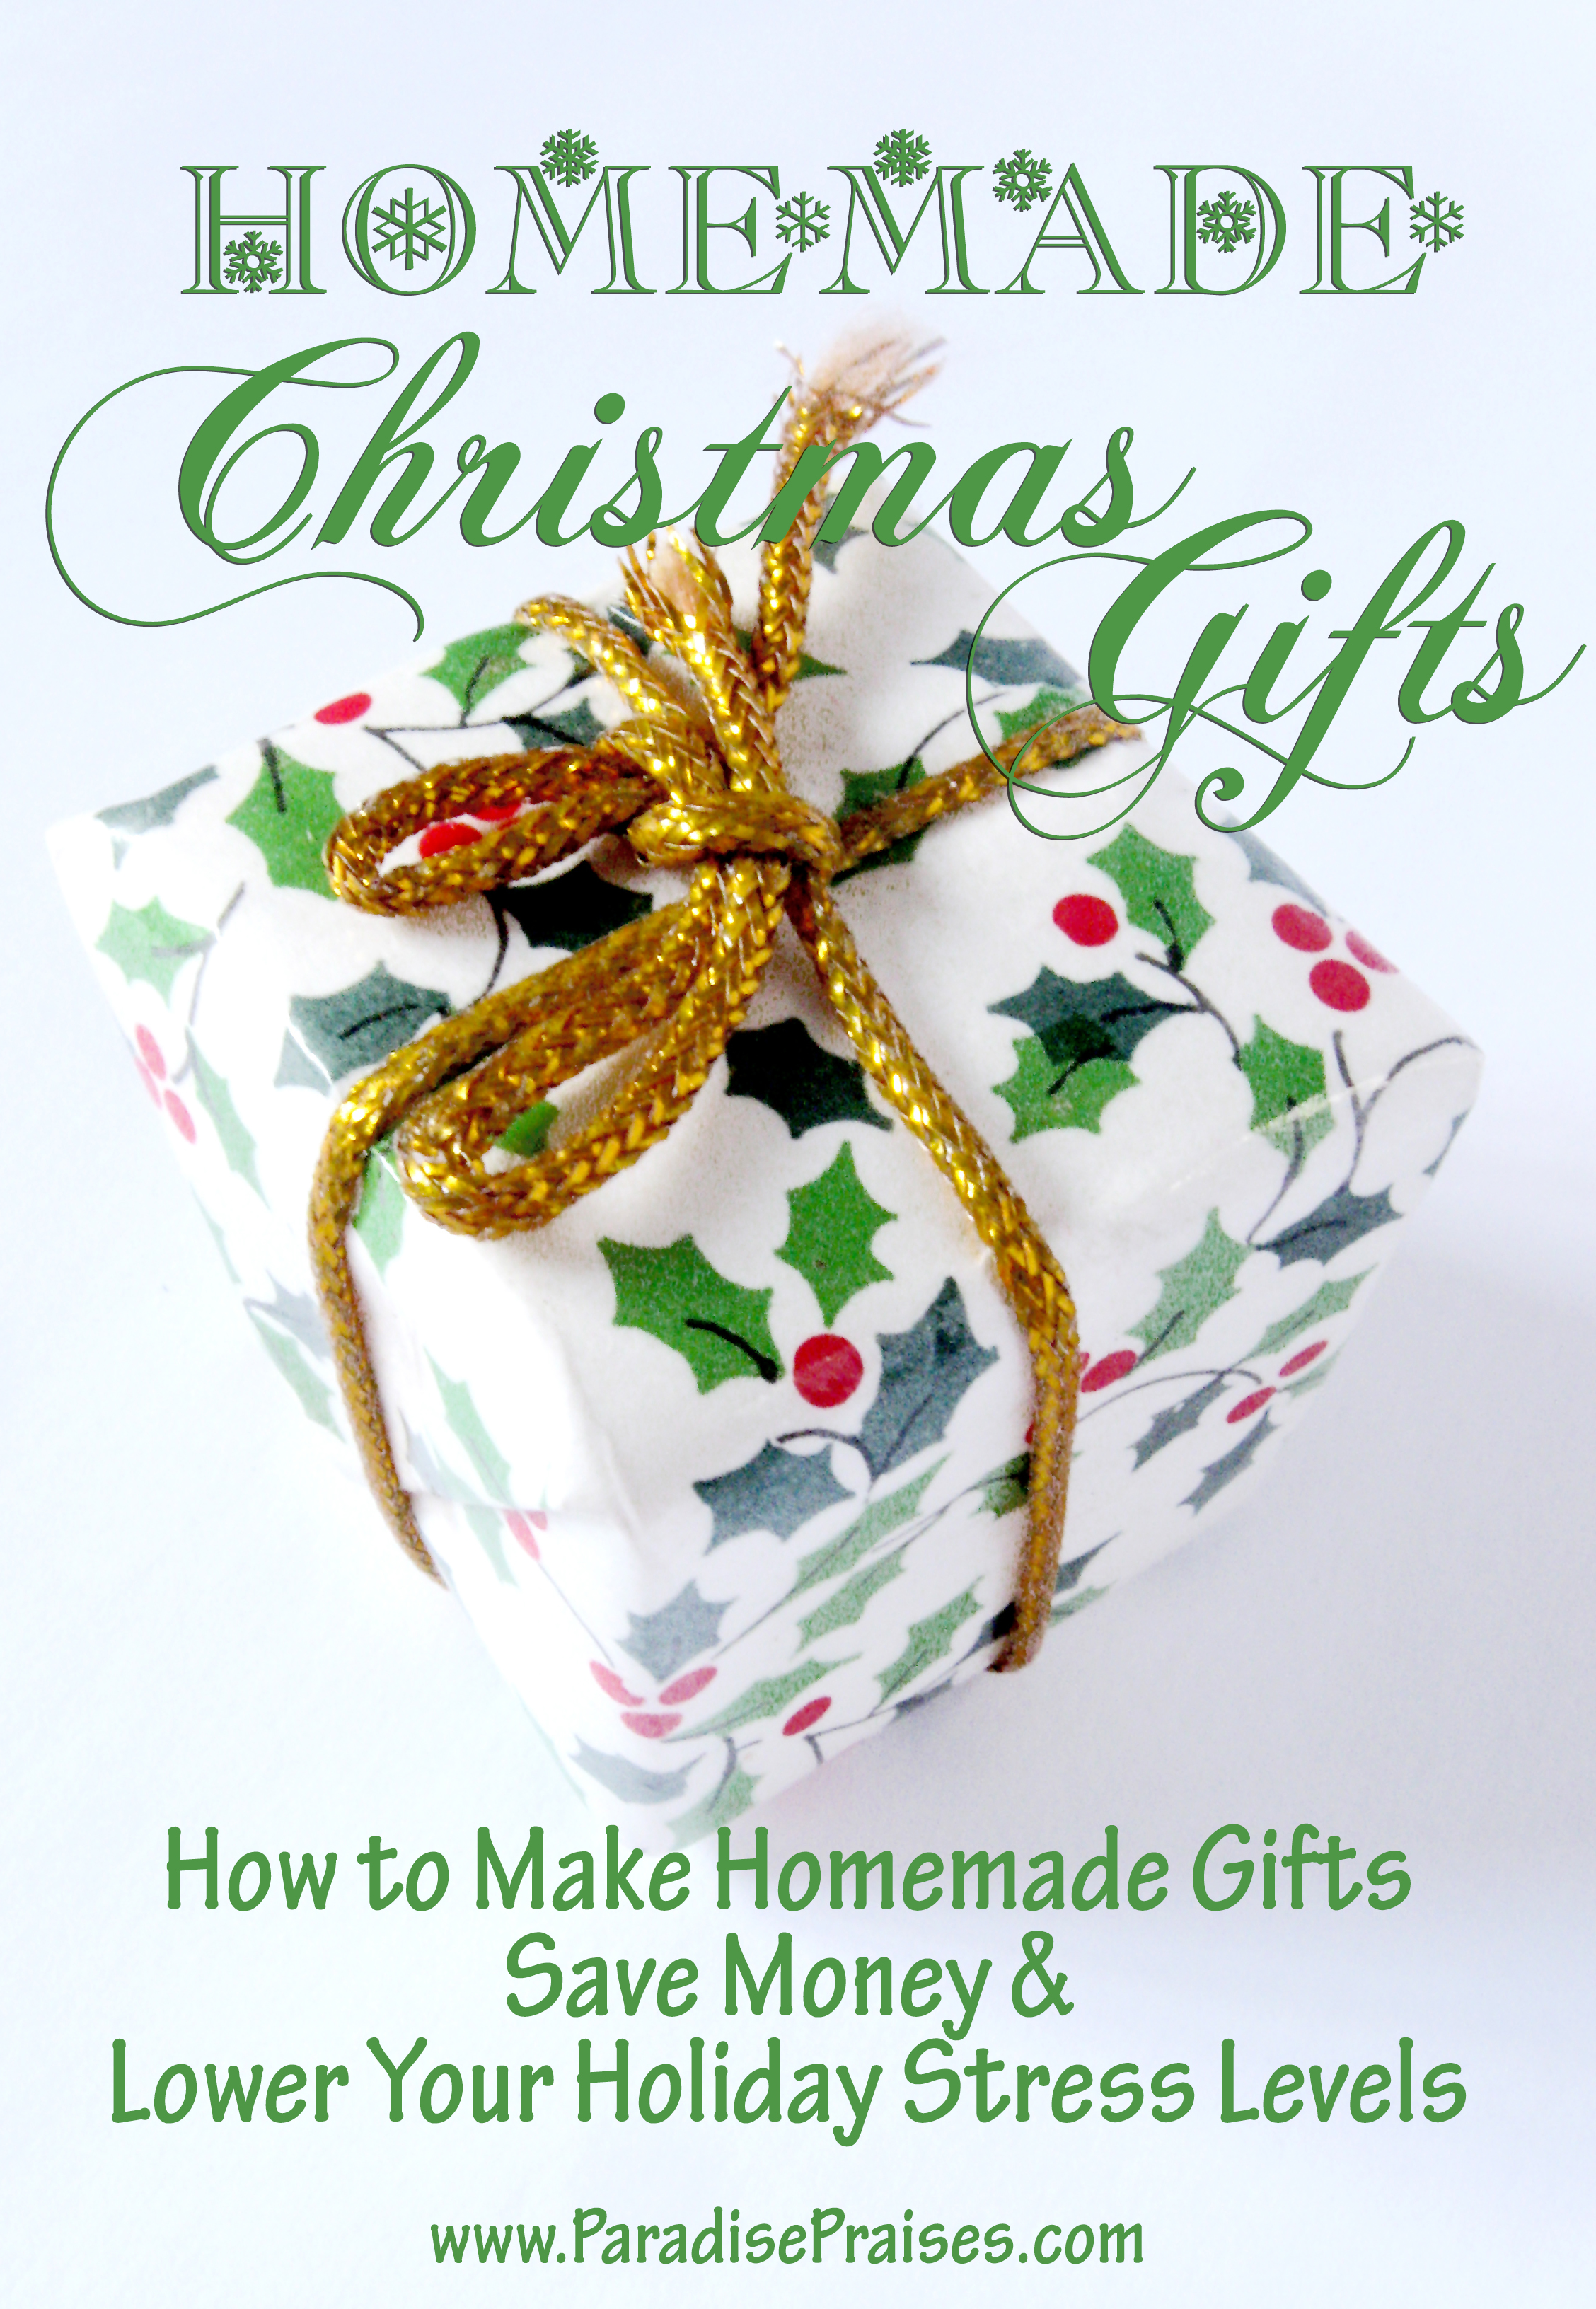 Homemade Christmas Gifts, How to Make Homemade Christmas Gifts, Save Money and Lower your holiday stress levels.